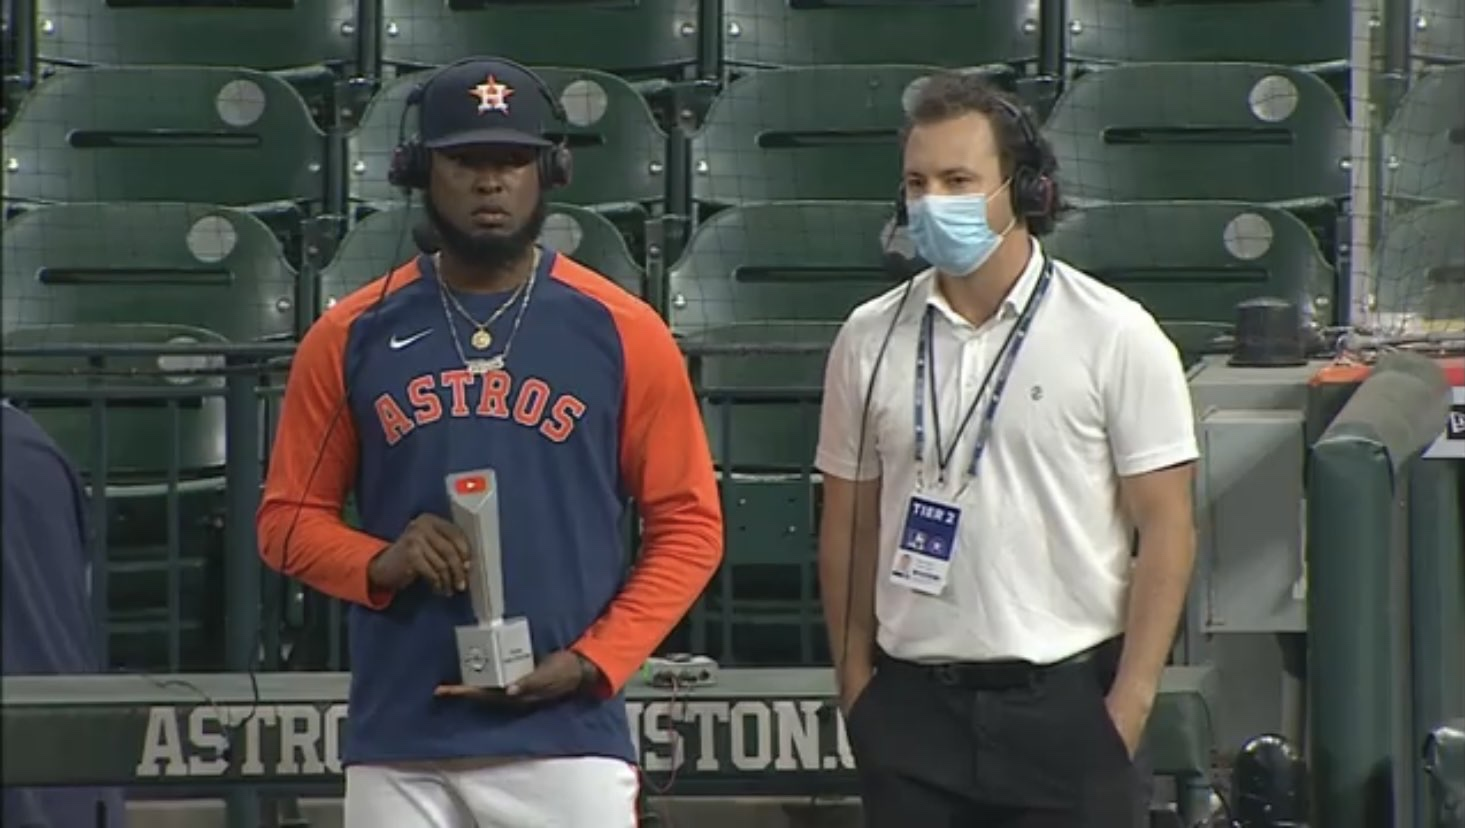 HOUSTON ASTROS ARE THE YOUTUBE SERIES CHAMPIONS